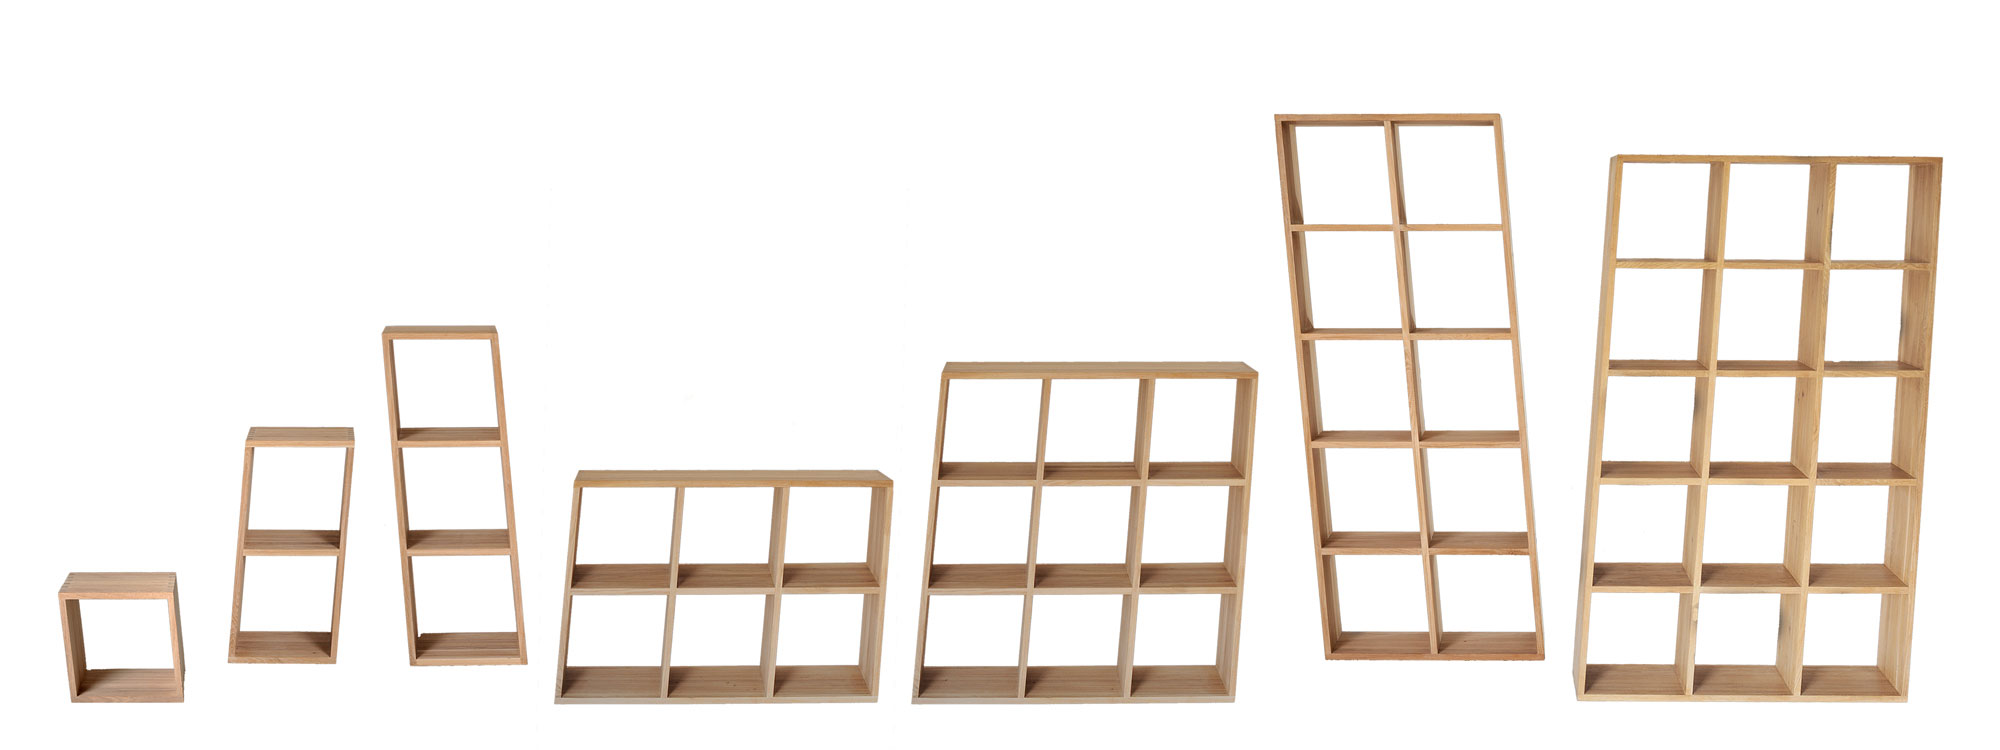 Wooden Designer Shelf PISA cut custom made in solid wood by vitamin design